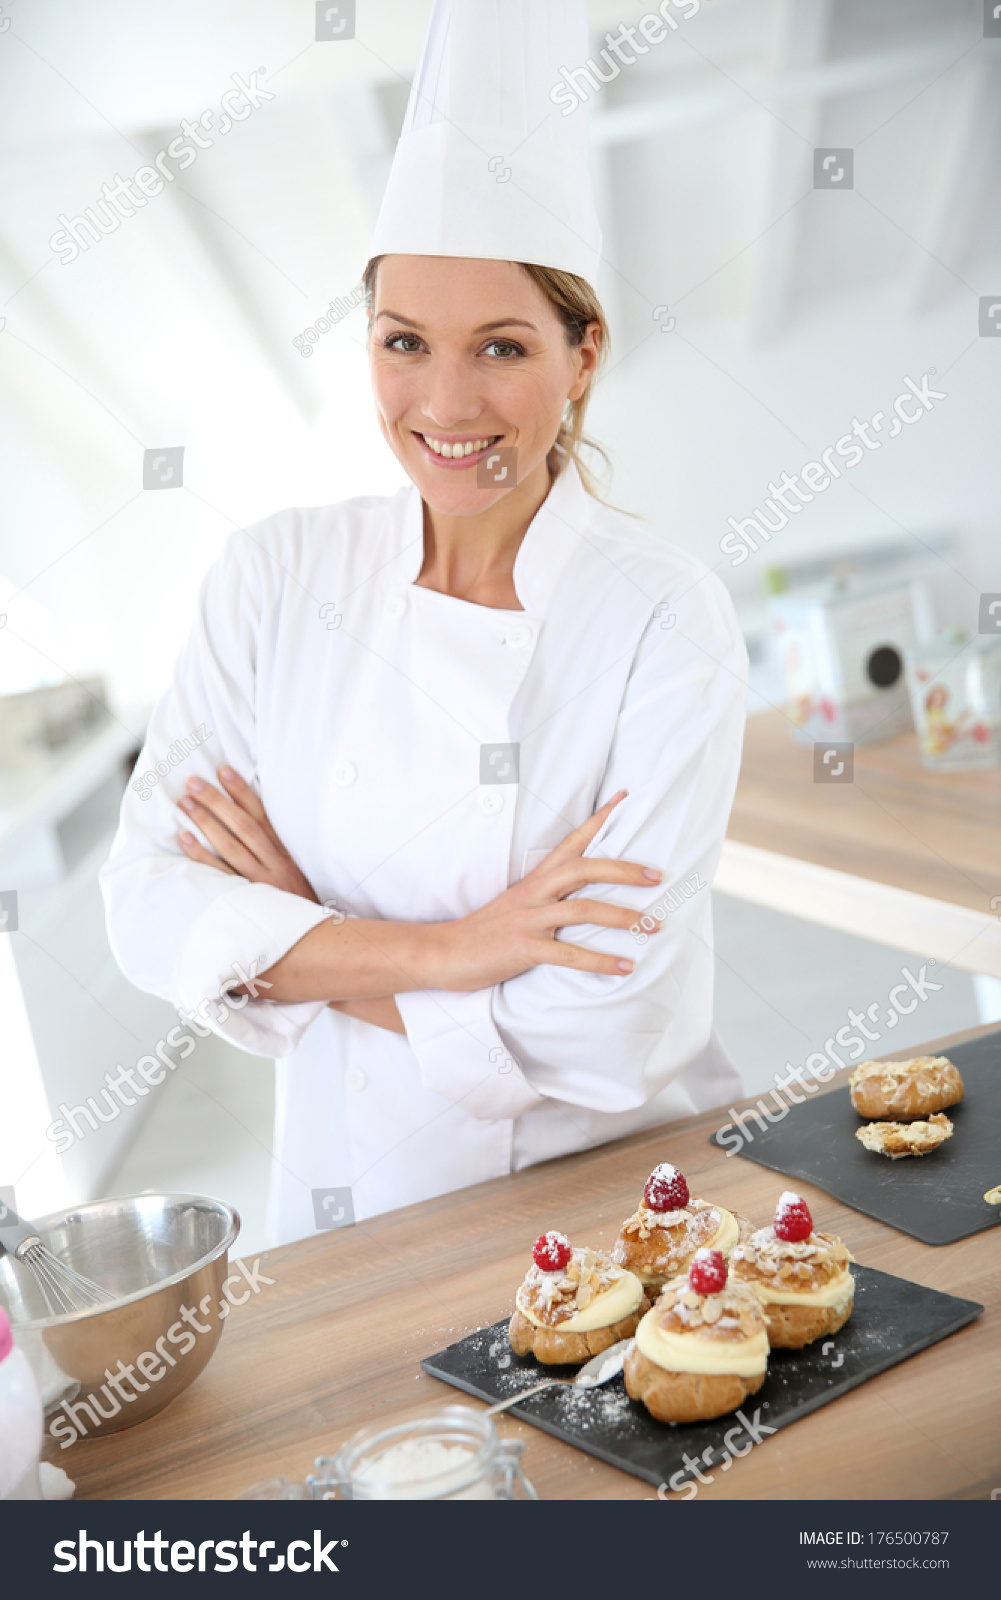 Successful Woman Confectioner Professional Kitchen Stock Photo ...